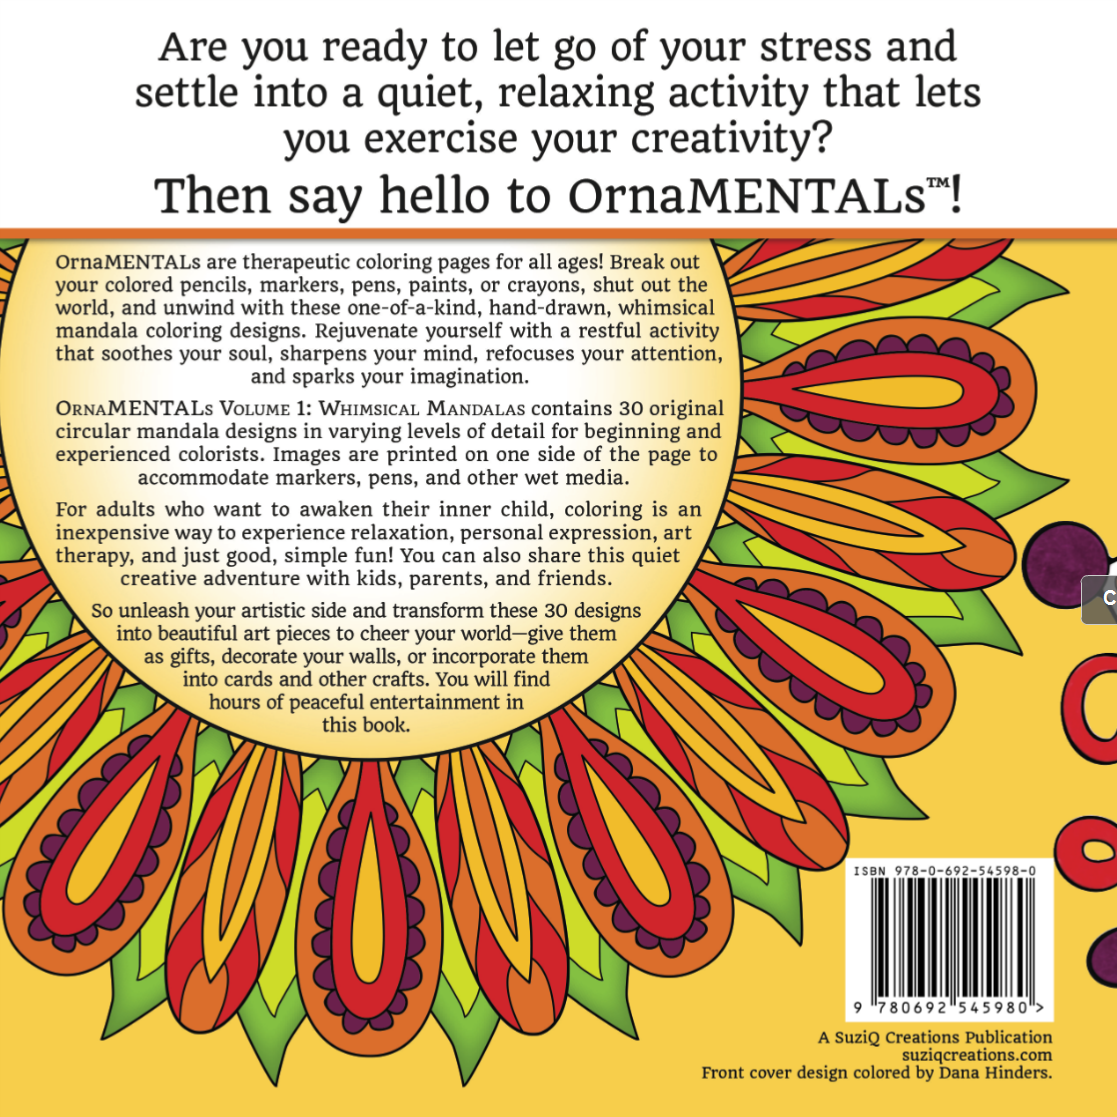 Back Cover of OrnaMENTALs™ Volume 1: Whimsical Mandalas